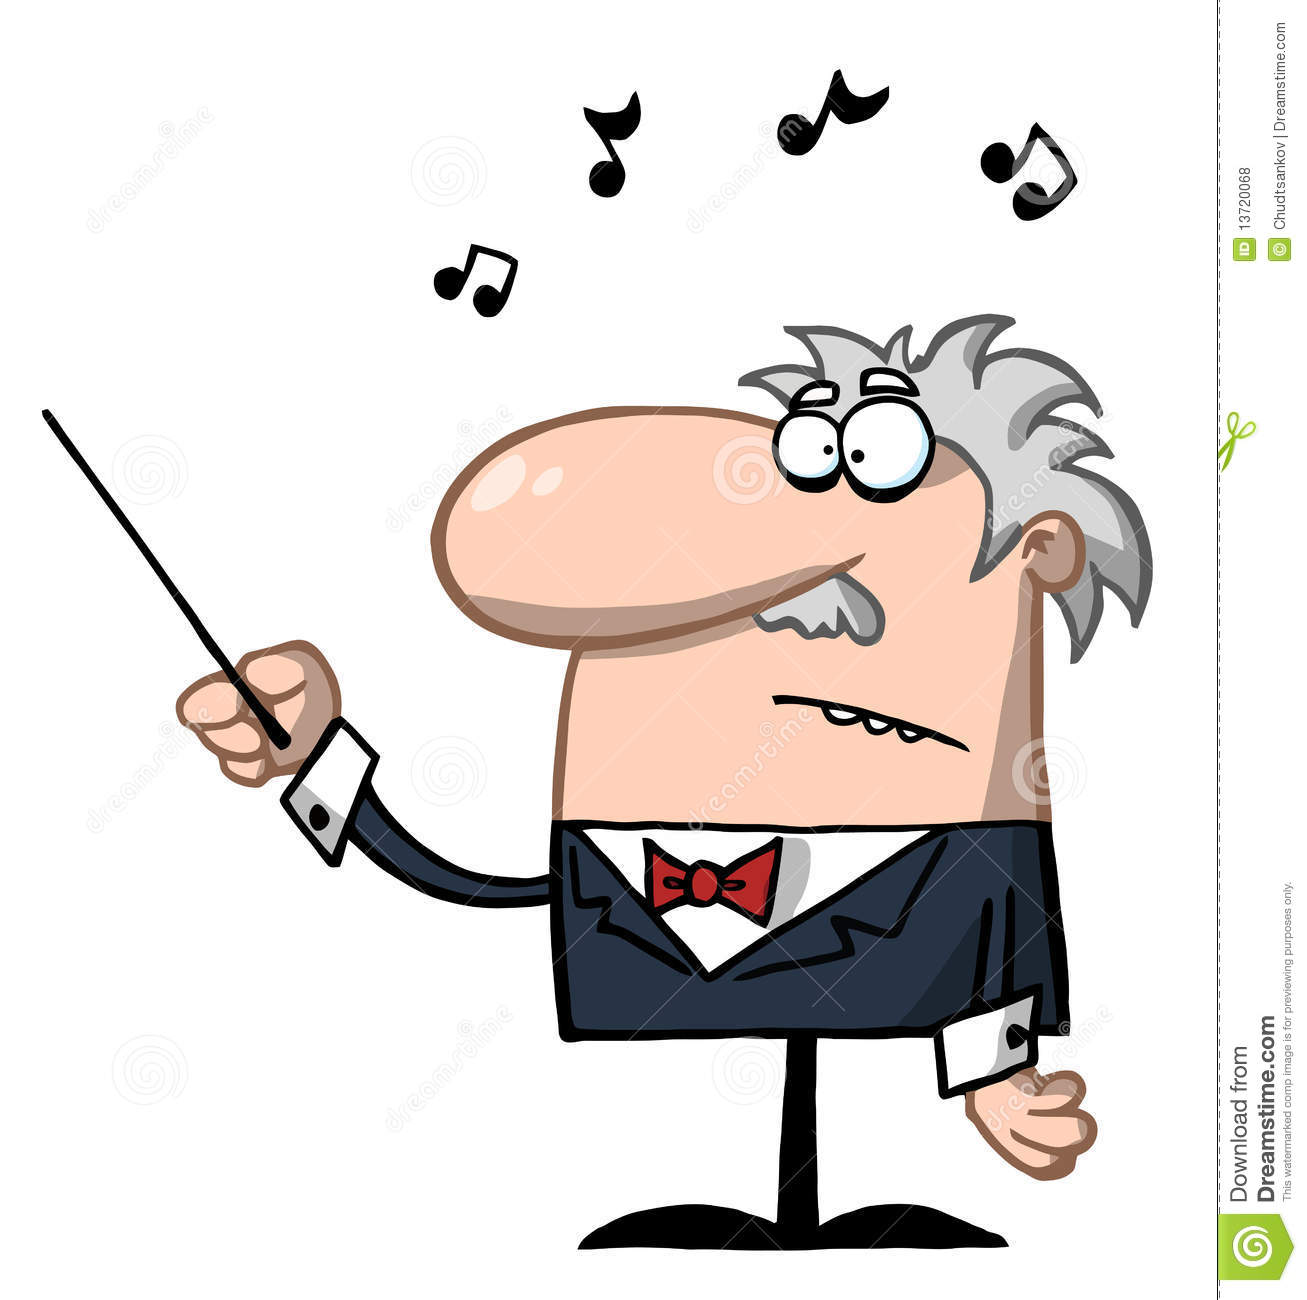 Marching Band Director Clipart Illustrations & clipart